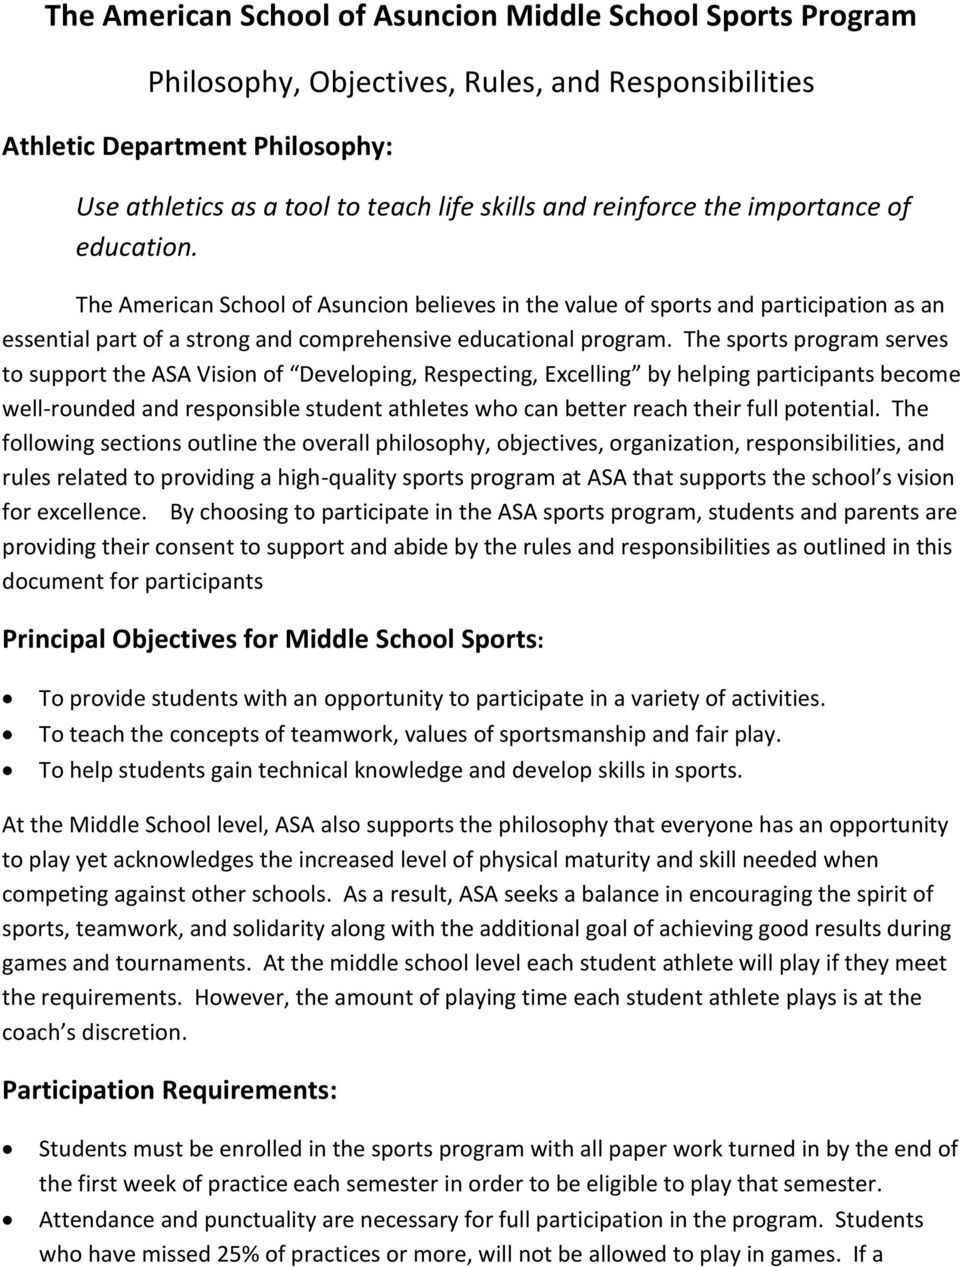 The sports program serves to support the ASA Vision of Developing, Respecting, Excelling by helping participants become well-rounded and responsible student athletes who can better reach their full